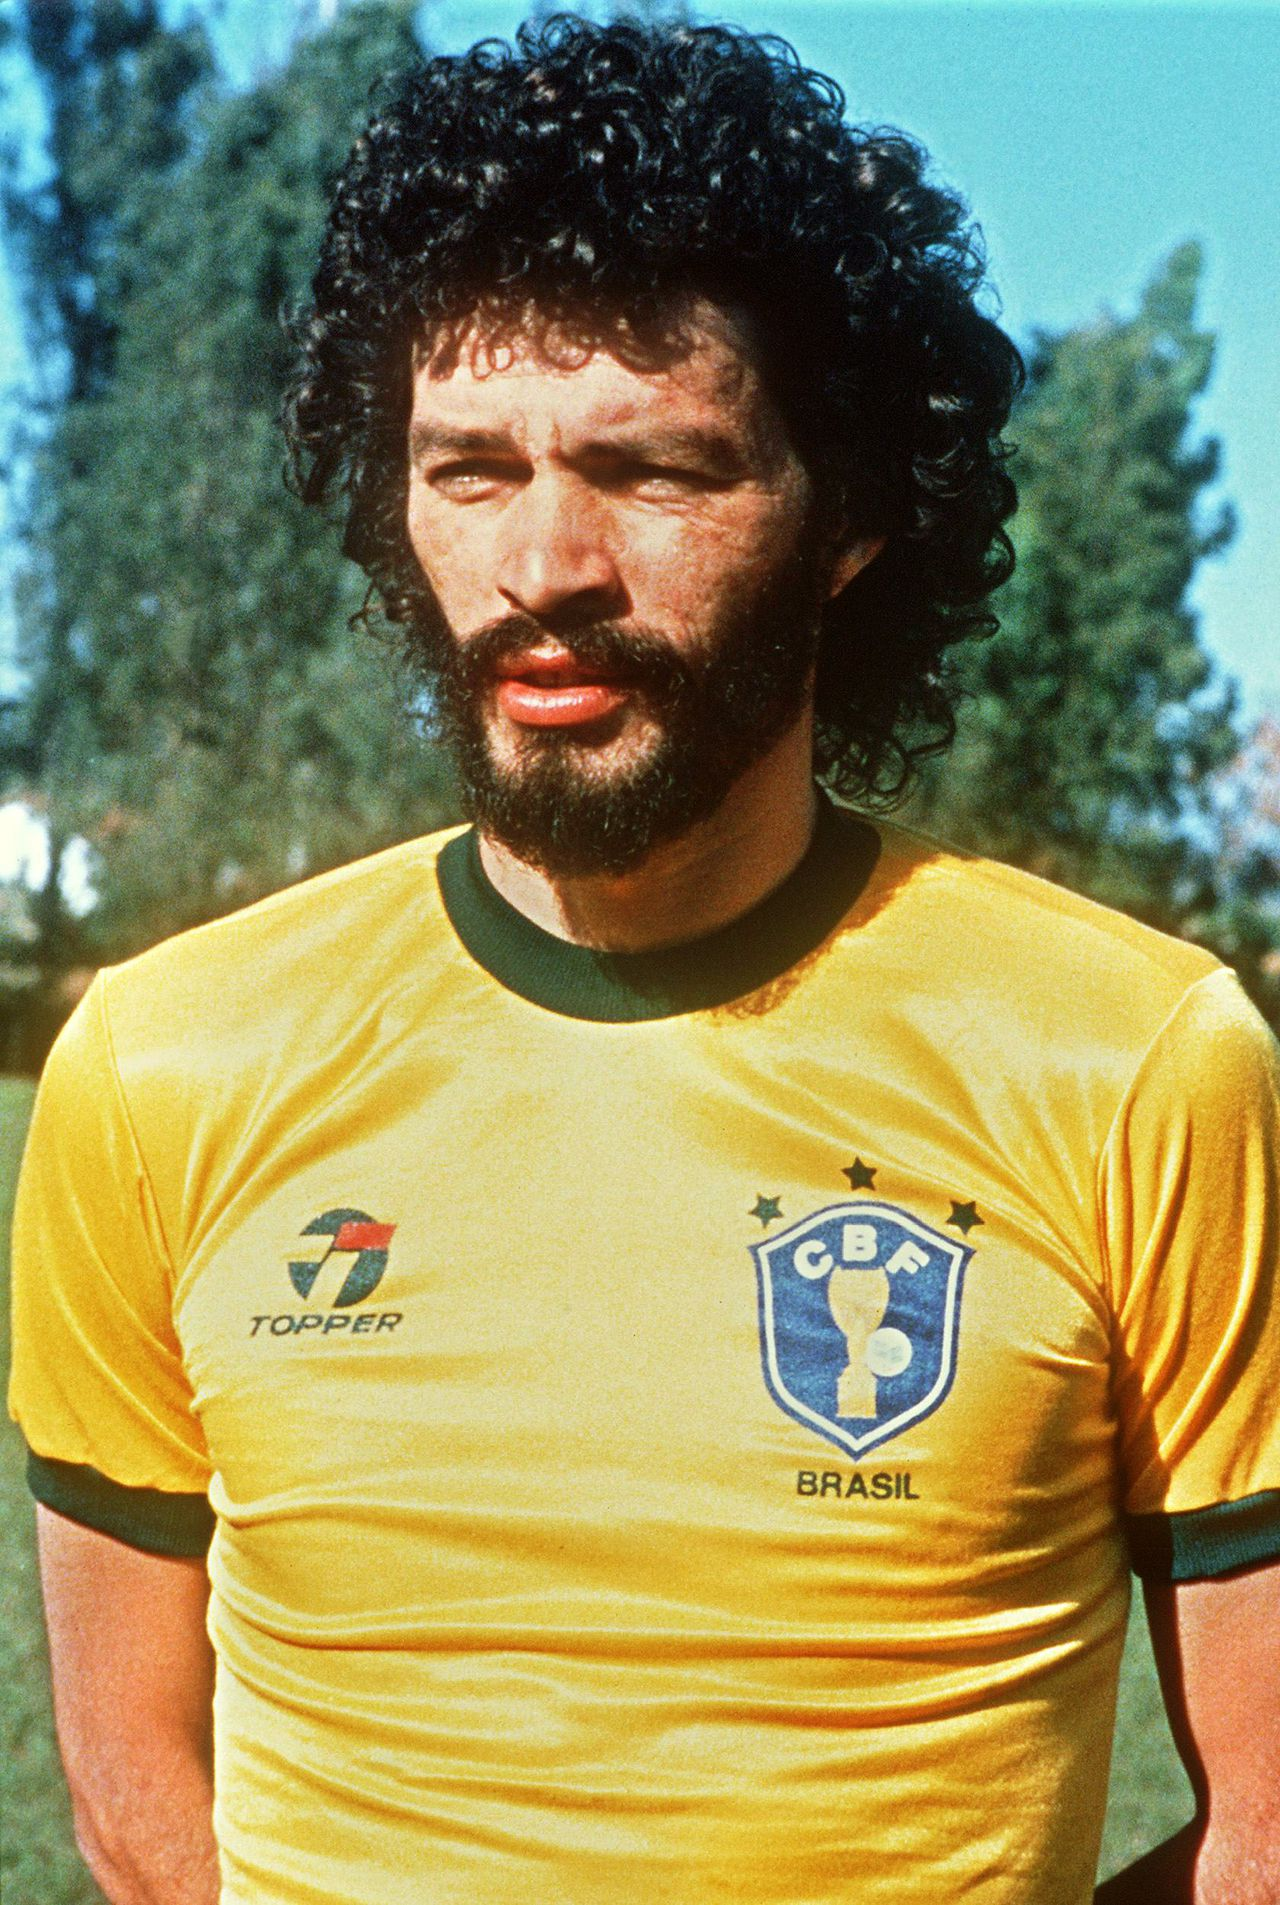 (FILES) A portrait taken in June 1985 of midfielder Socrates, selected to participate with Brazil's national football team to the 1986 World Cup taking place in Mexico from 31 May to 29 June. Former Brazil captain Socrates died on December 4, 2011 aged 57 from an intestinal infection, a spokesperson for the Albert Einstein Hospital announced. AFP PHOTO/ JORGE DURAN